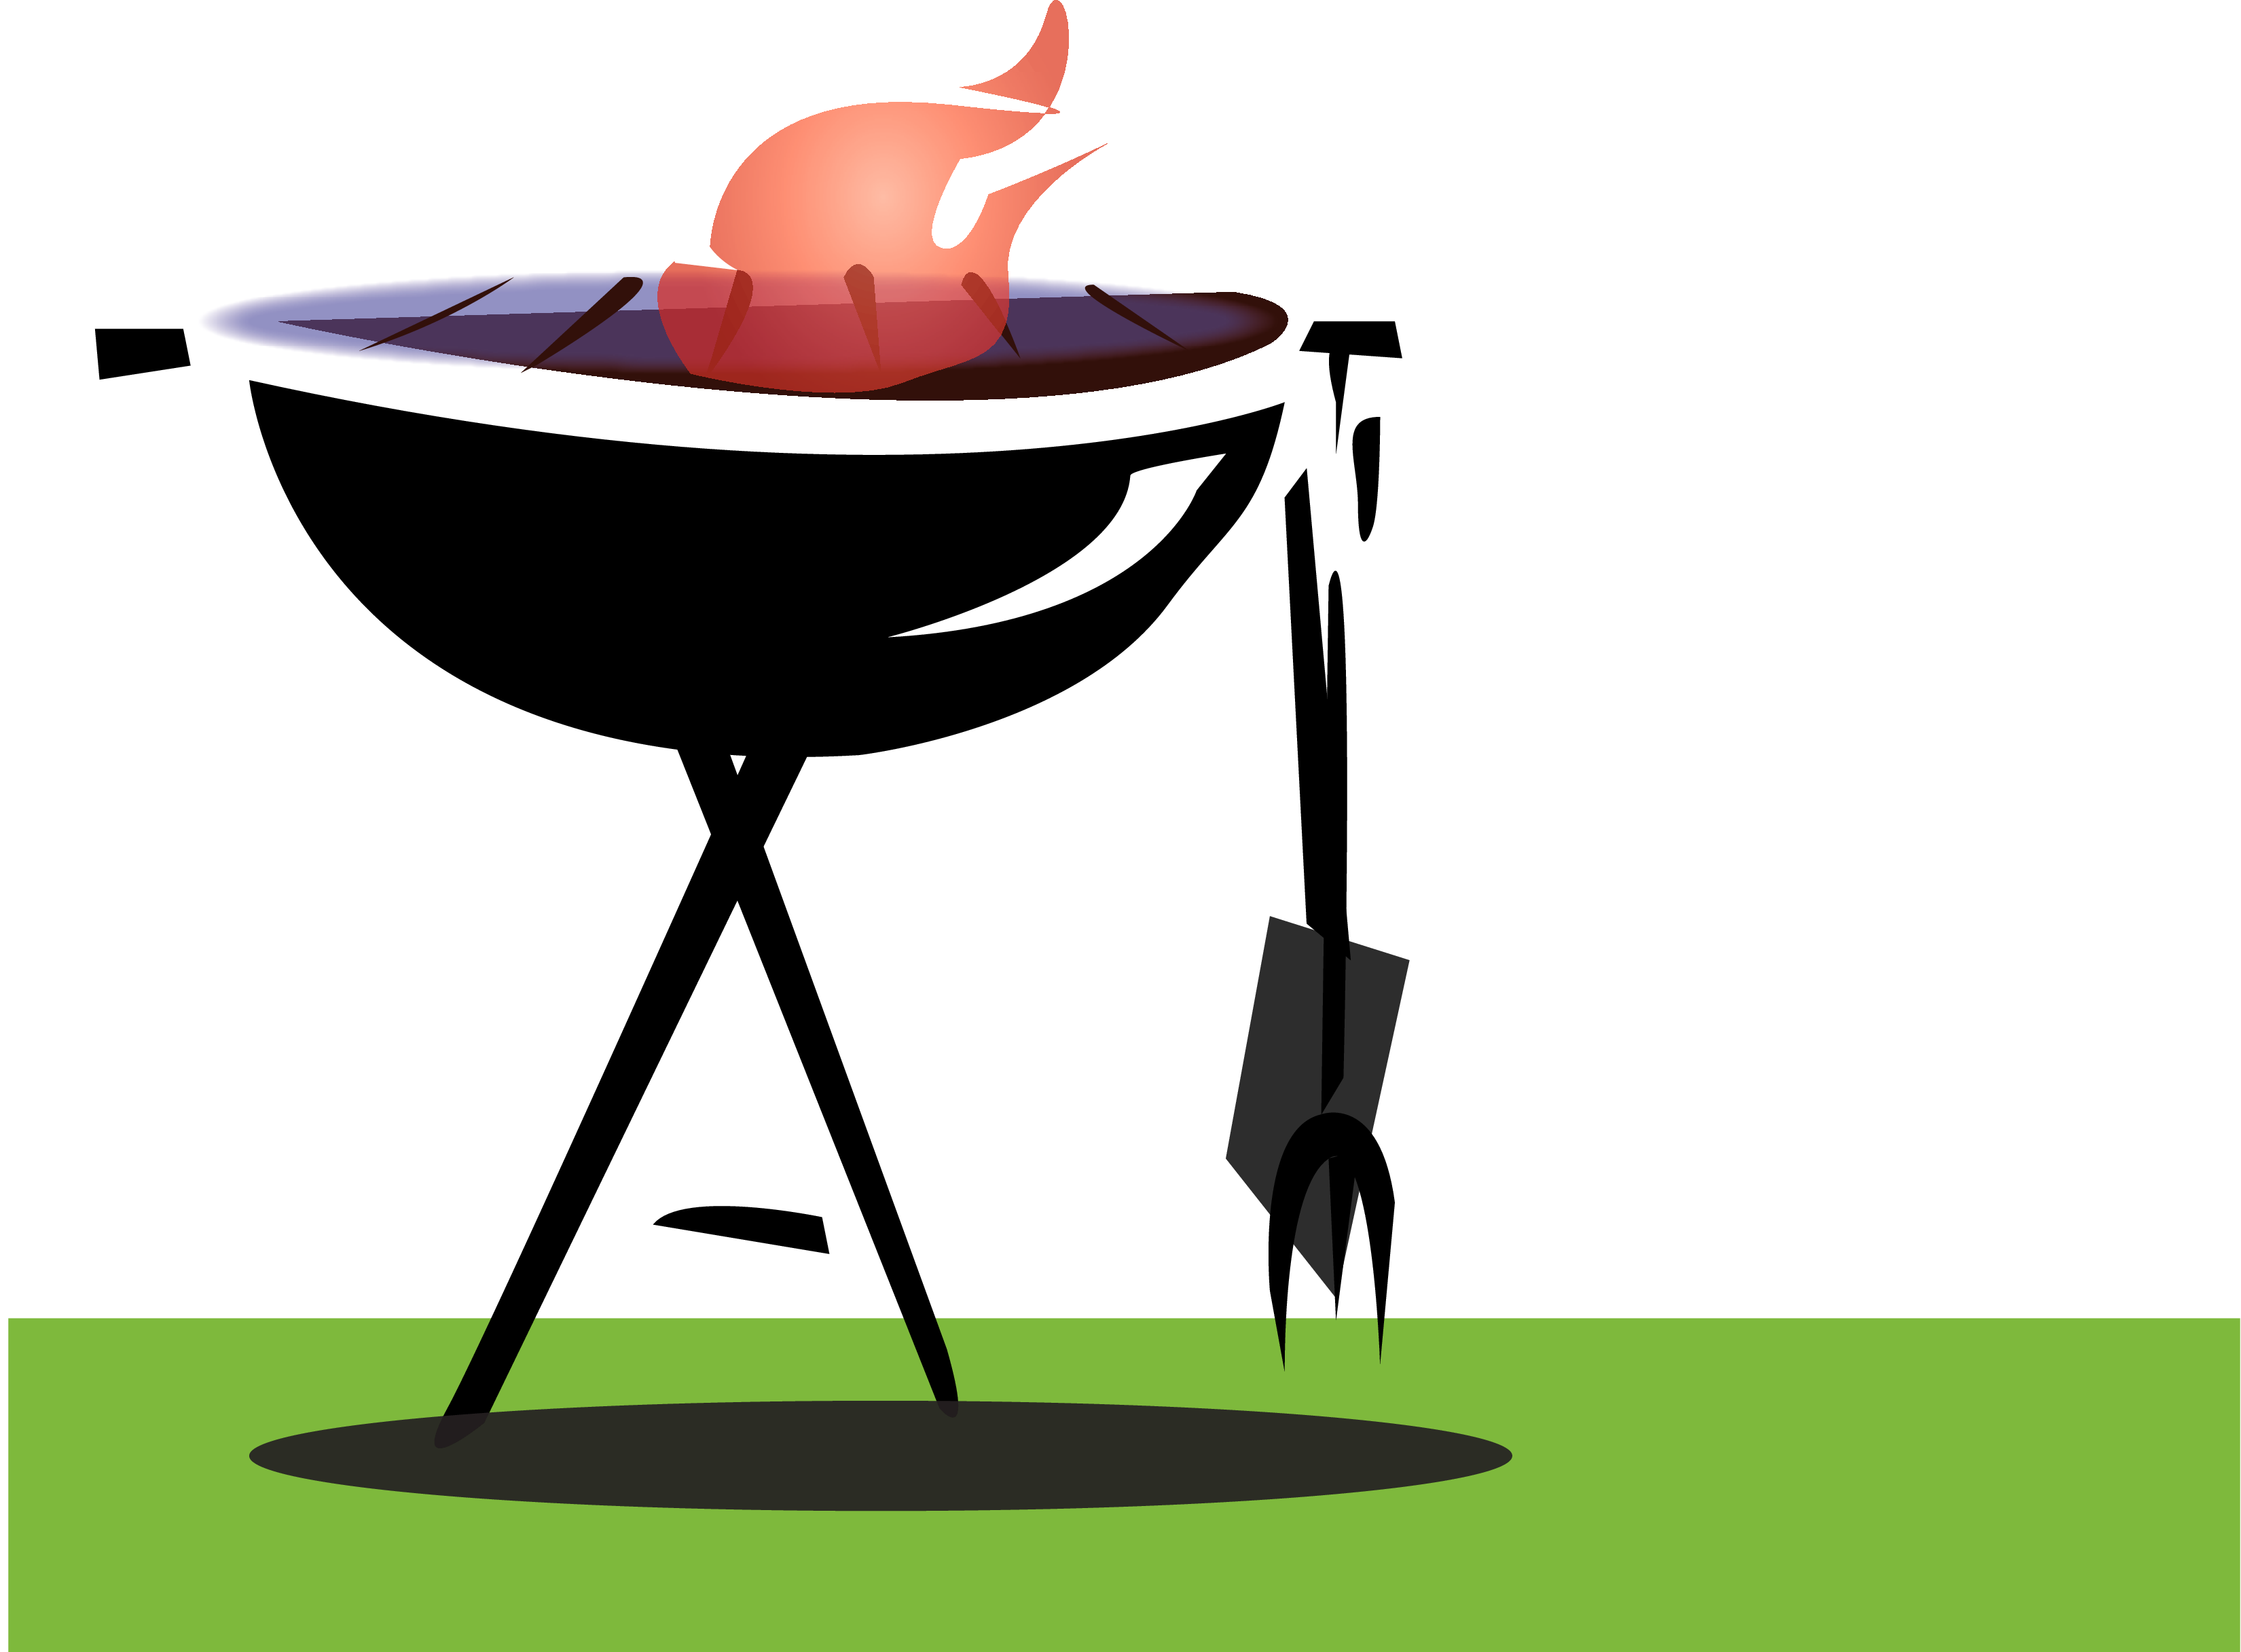 freeuse download Barbecue work bbq free. Grilled clipart braai